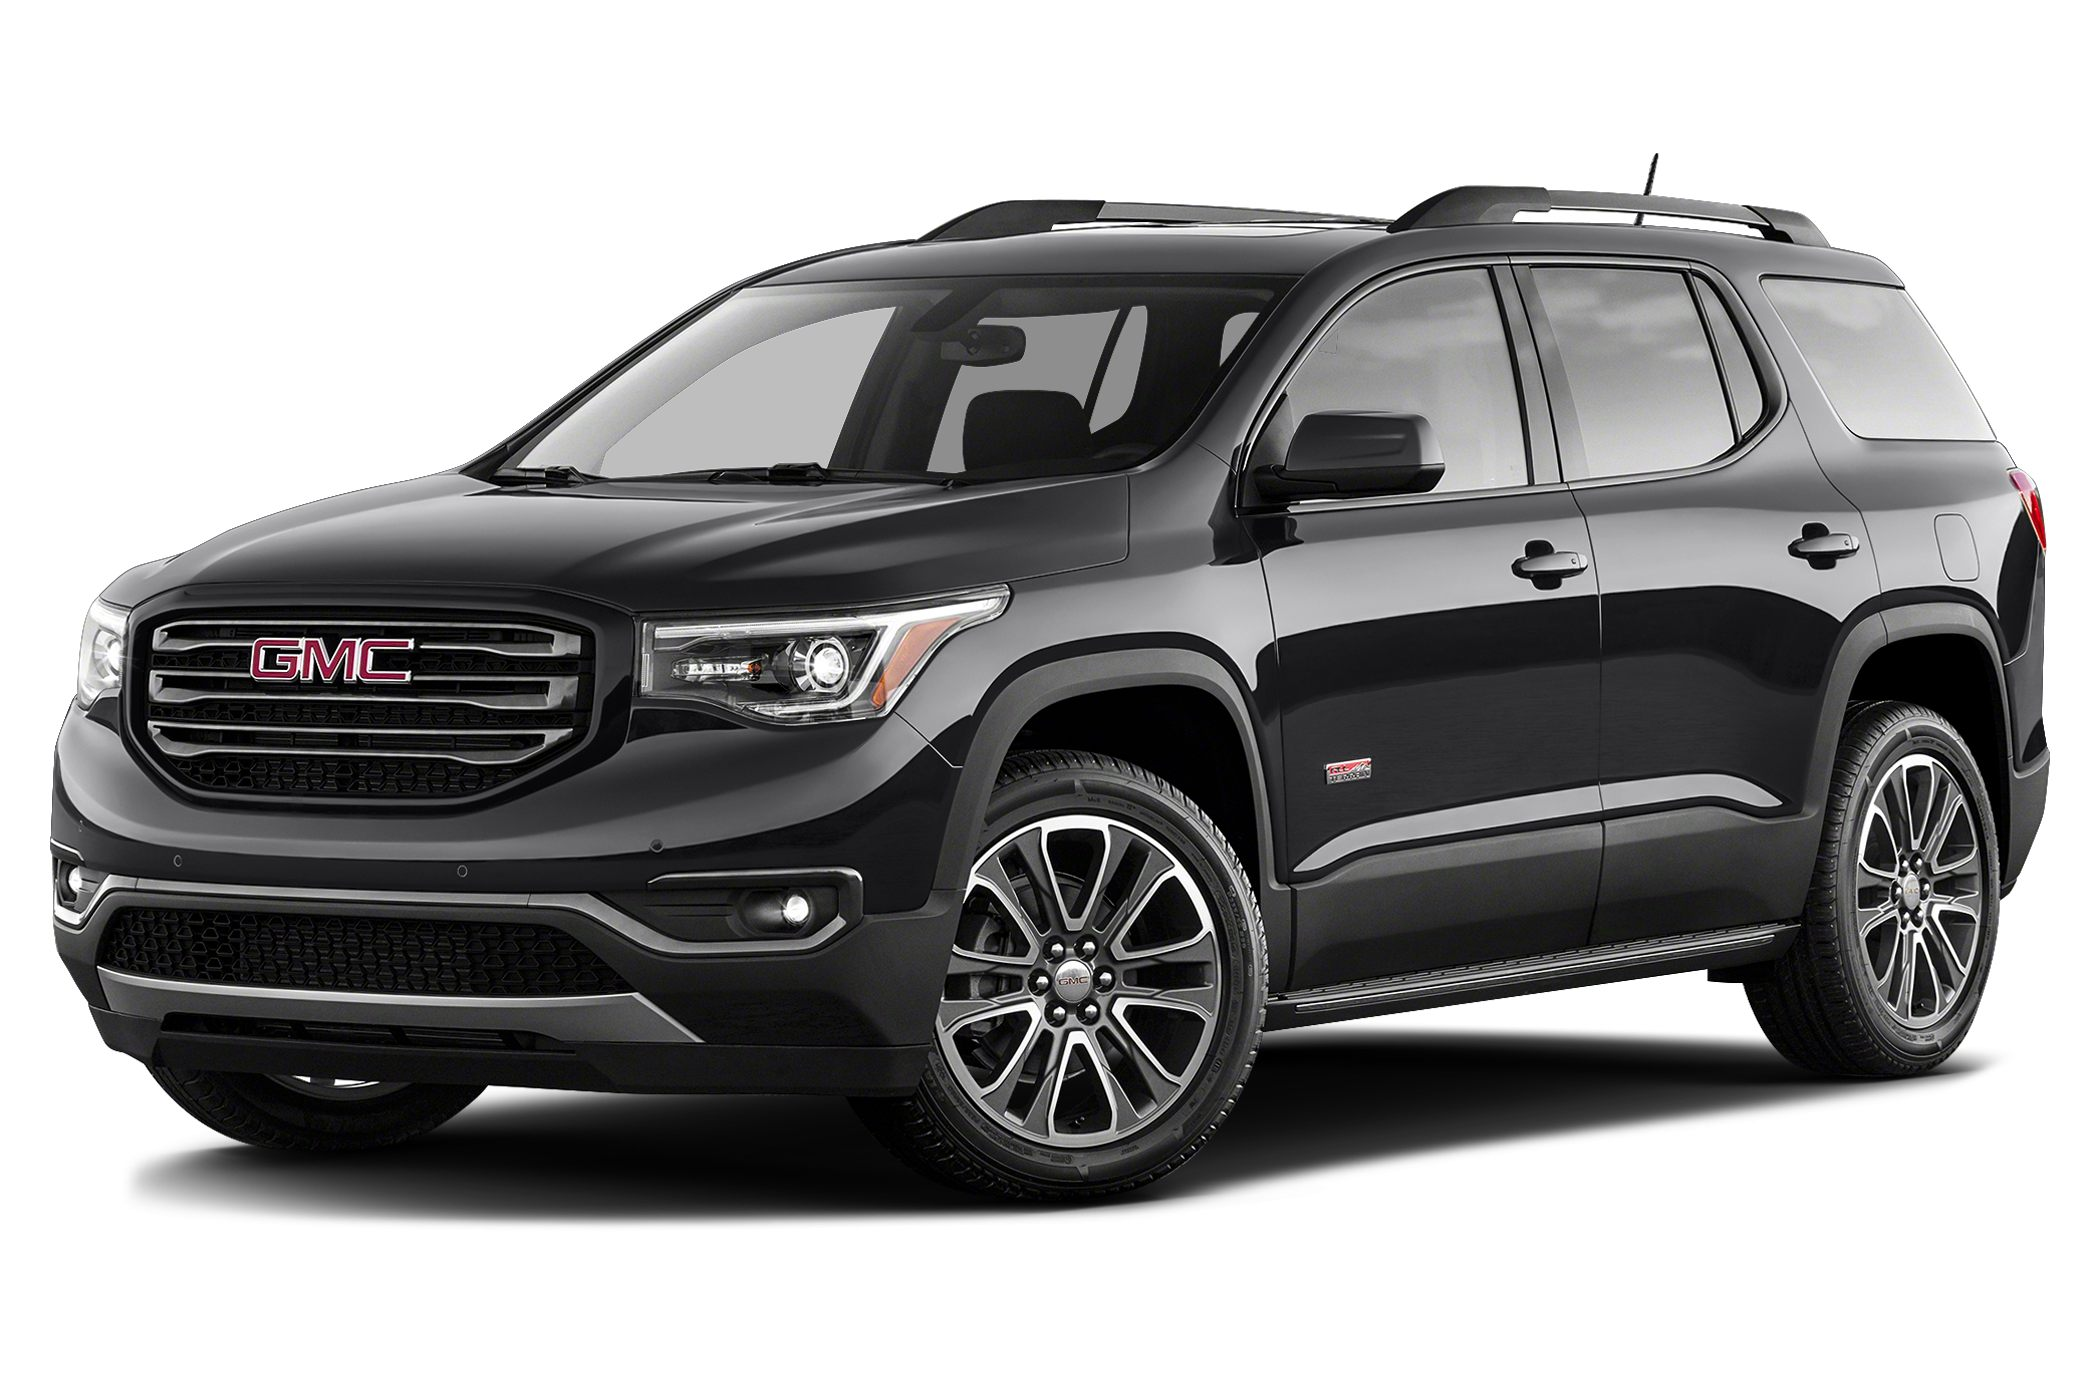 2017 Gmc Acadia Specs And Prices